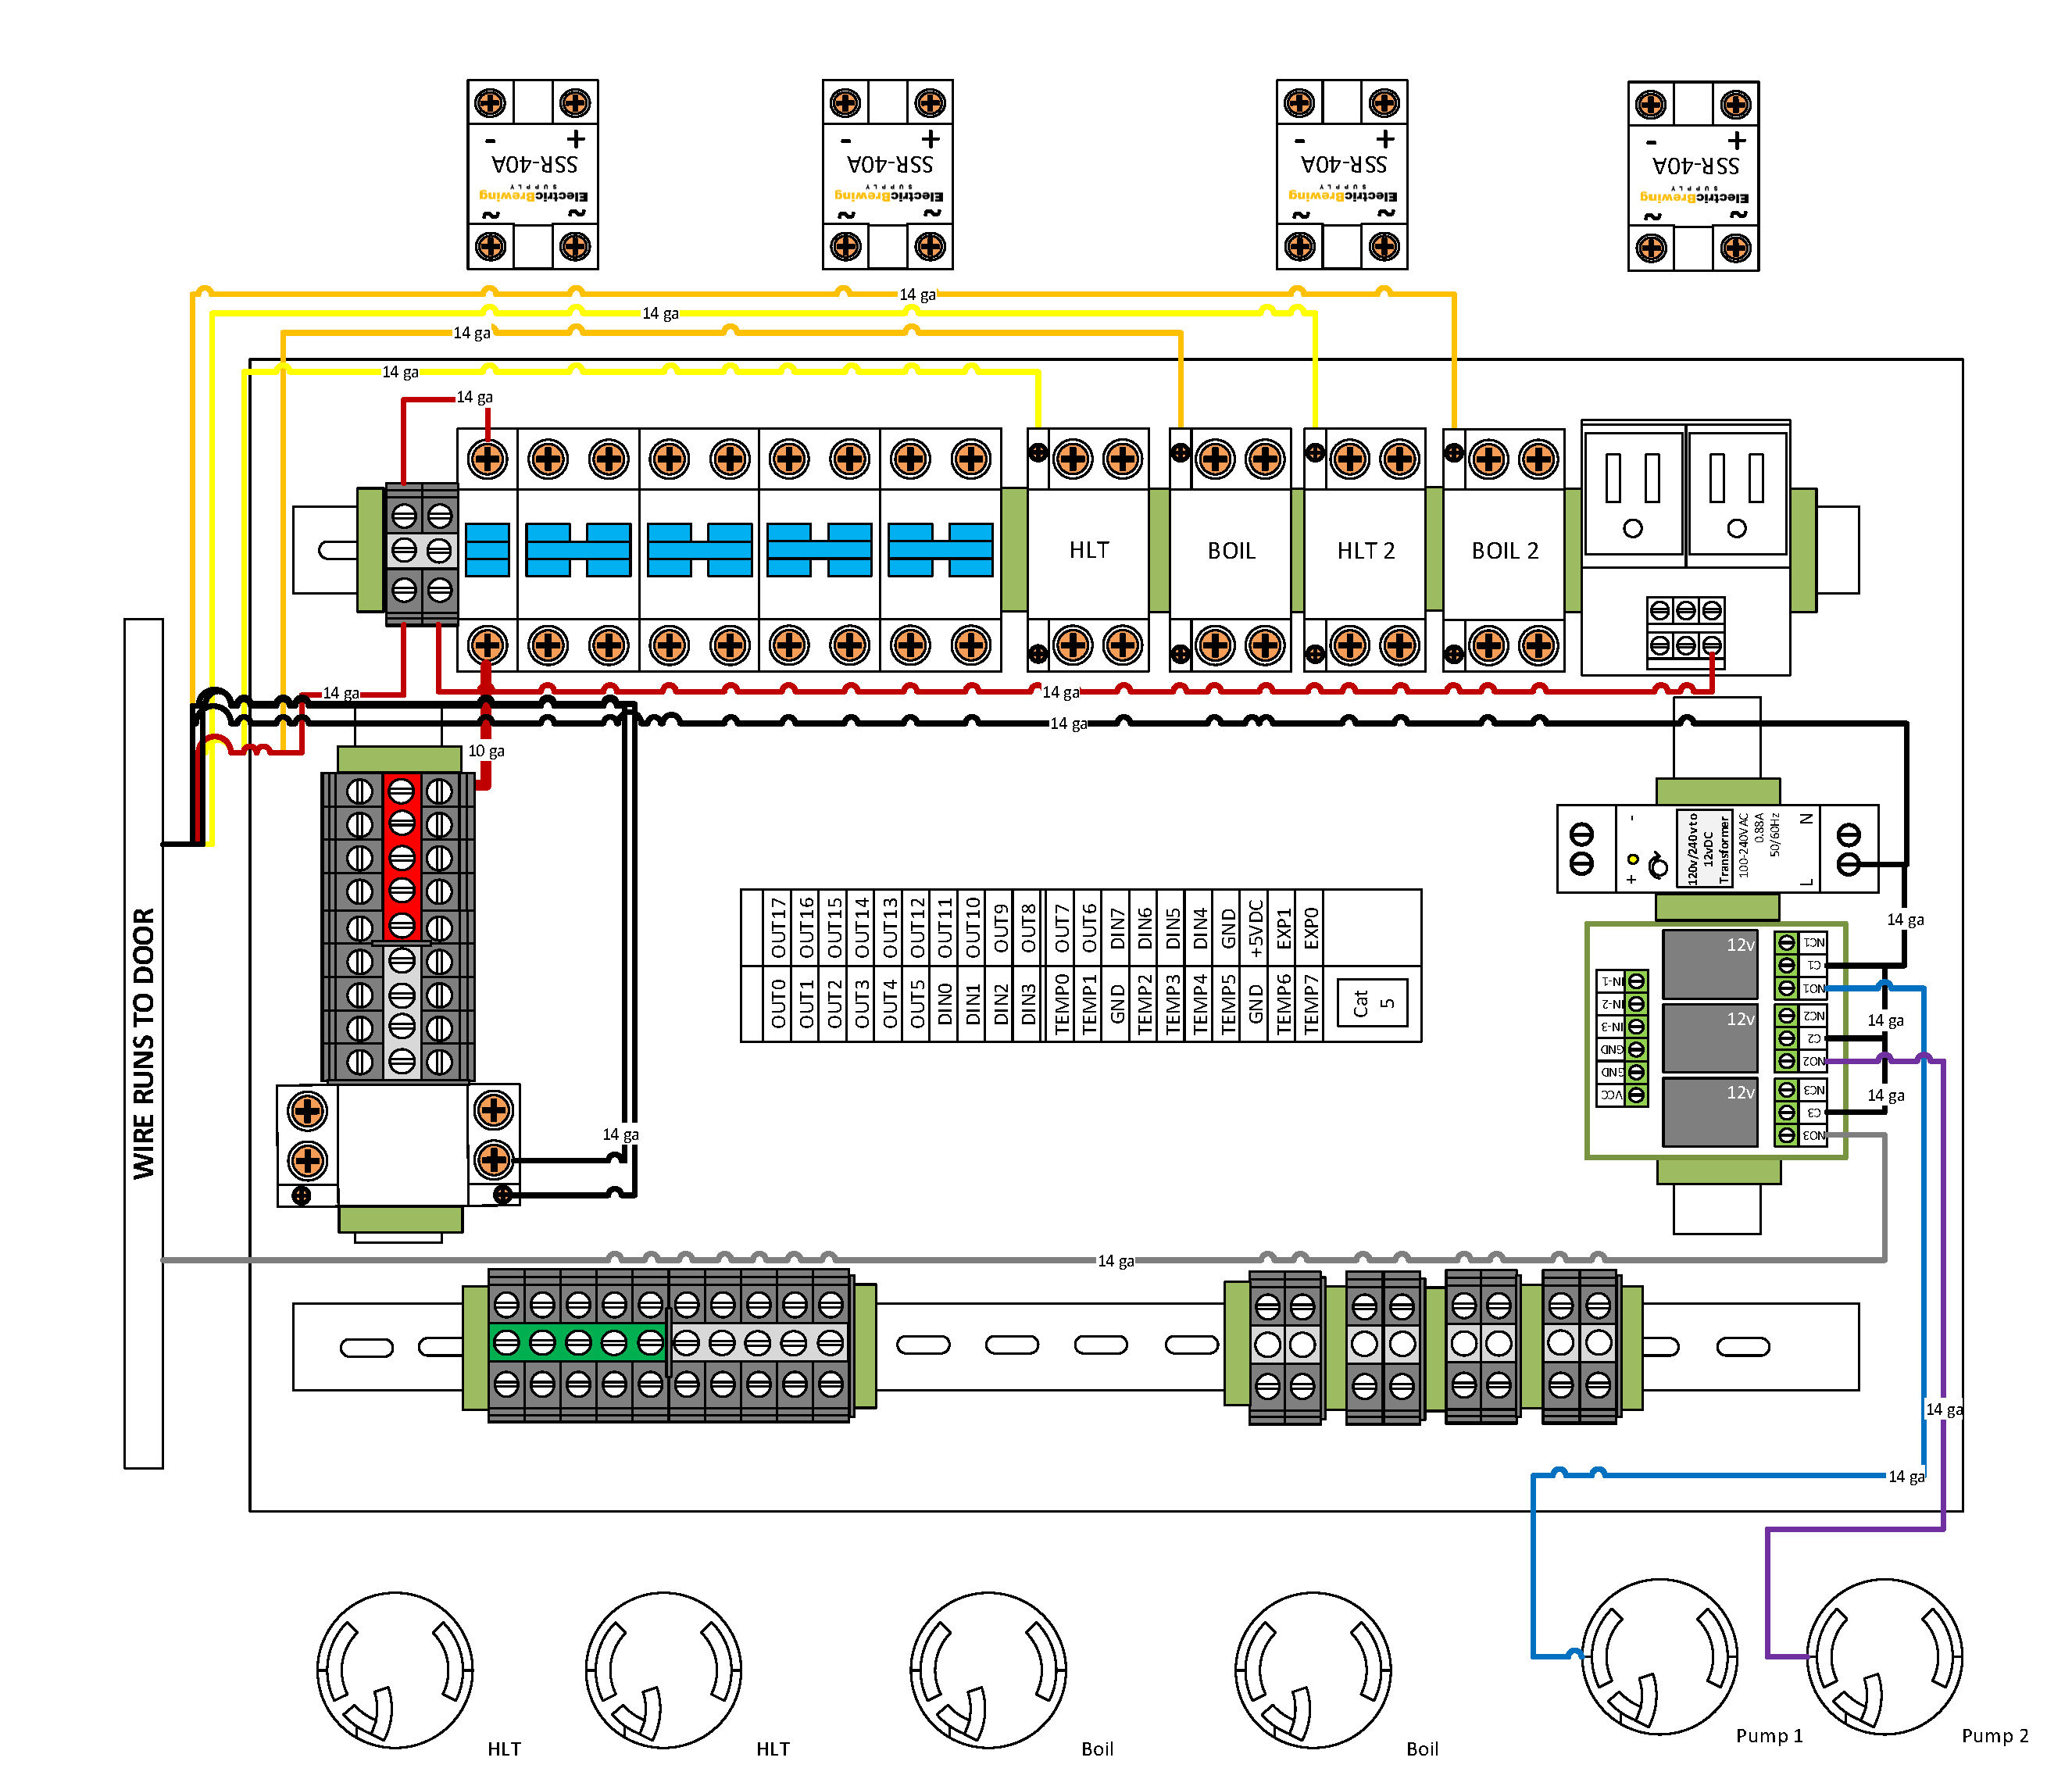 electrical control panel wiring diagram Download-Electric Brewery Wiring Diagram Fresh Bcs 4 Element Gen2 Control Panel Guide – Electric Brewing Supply 12-e